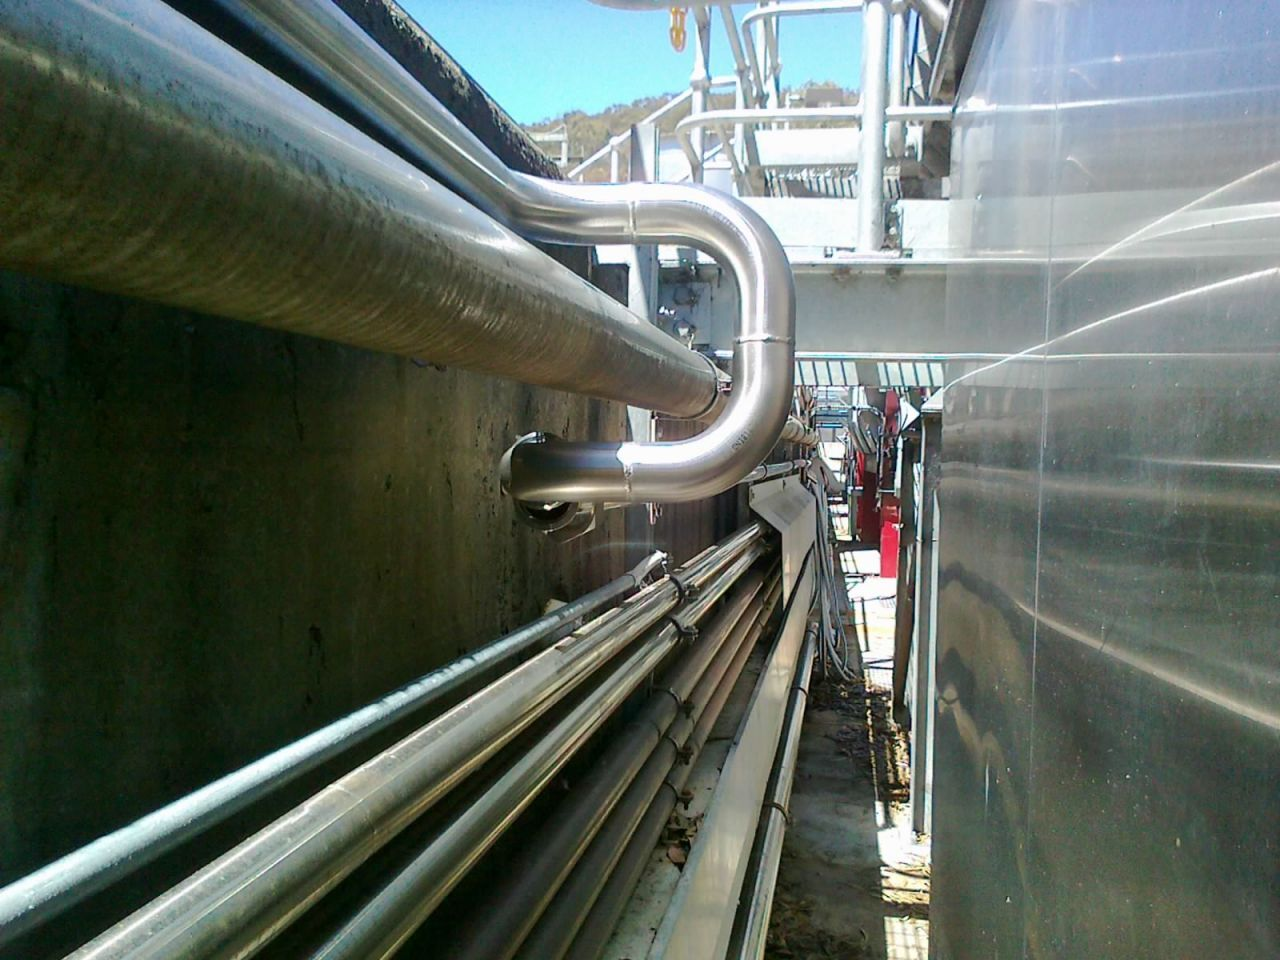 Food and Beverage Stainless Steel pipes